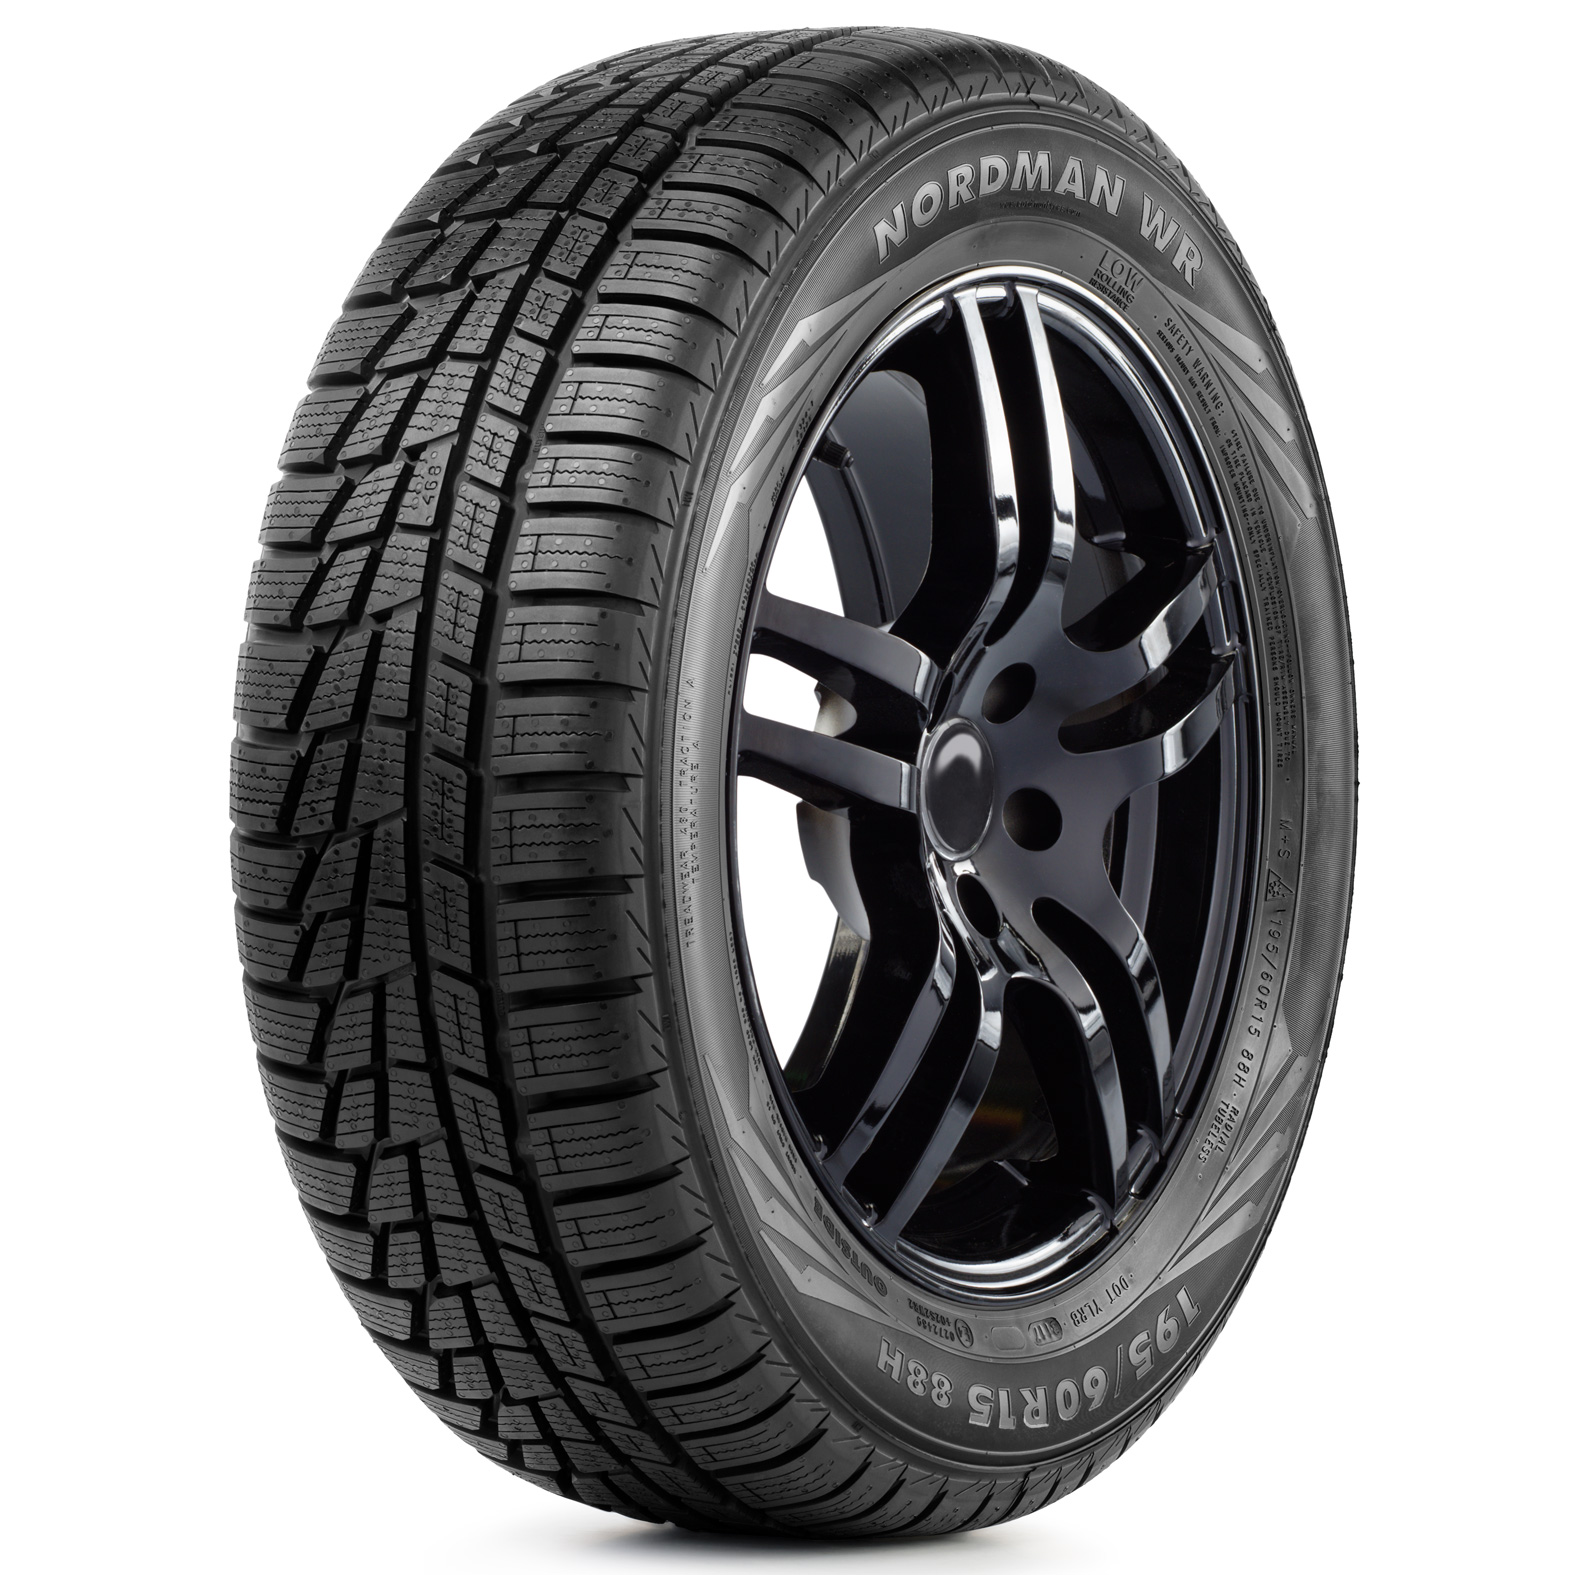 Nordman WR tires – angle